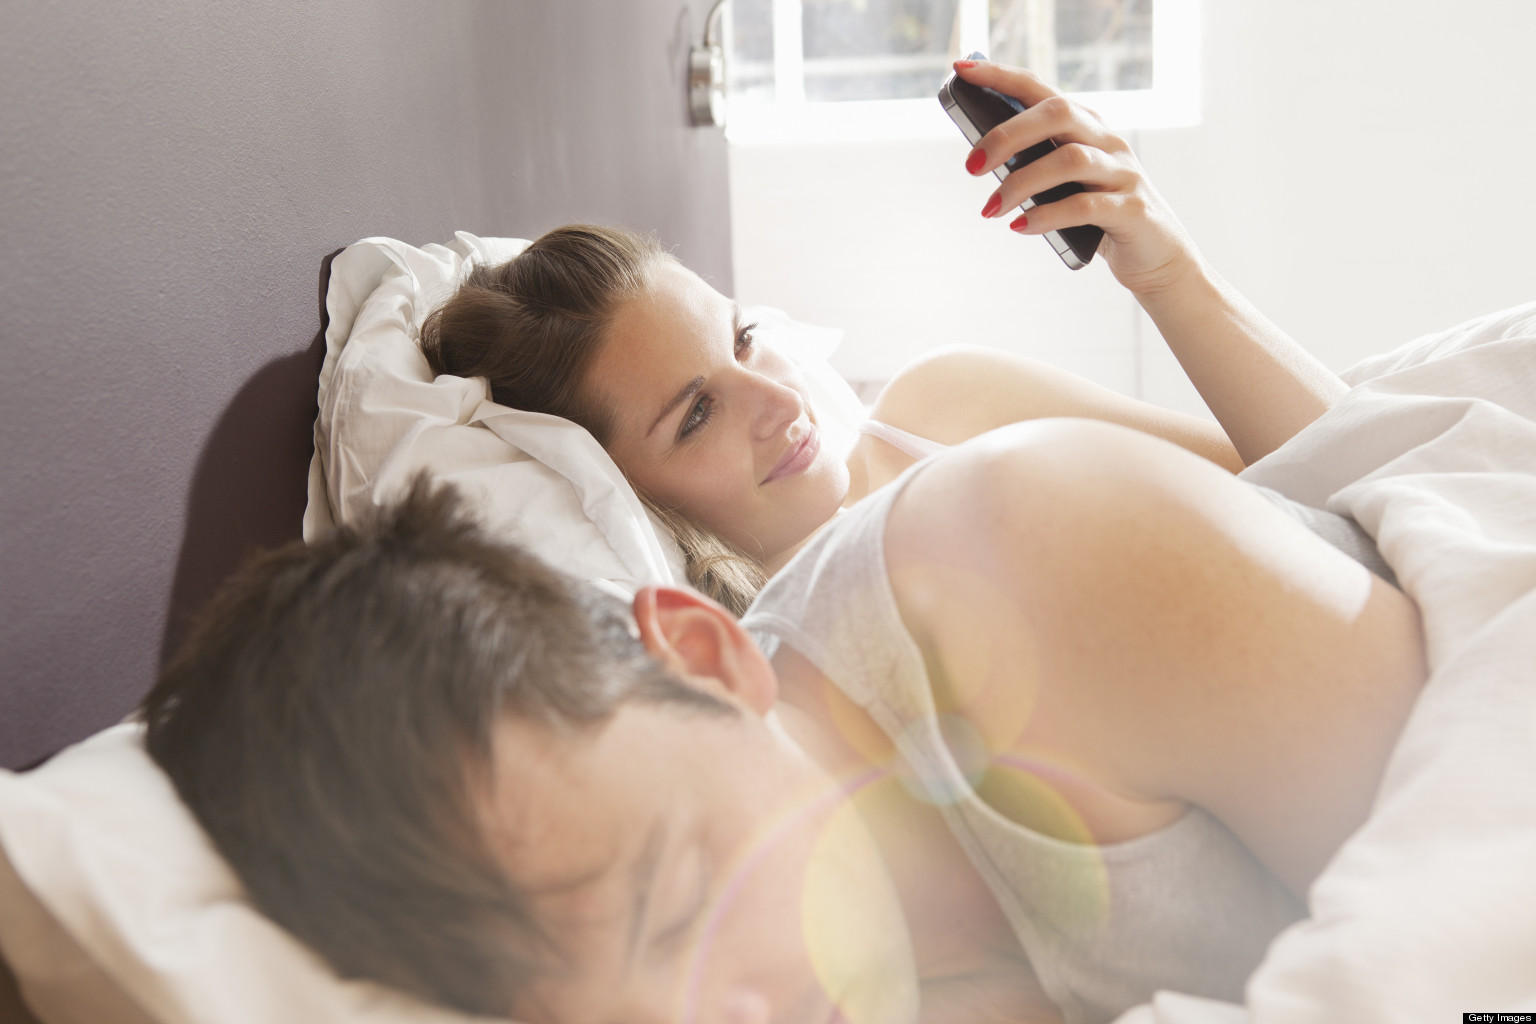 What constitutes cheating on a spouse